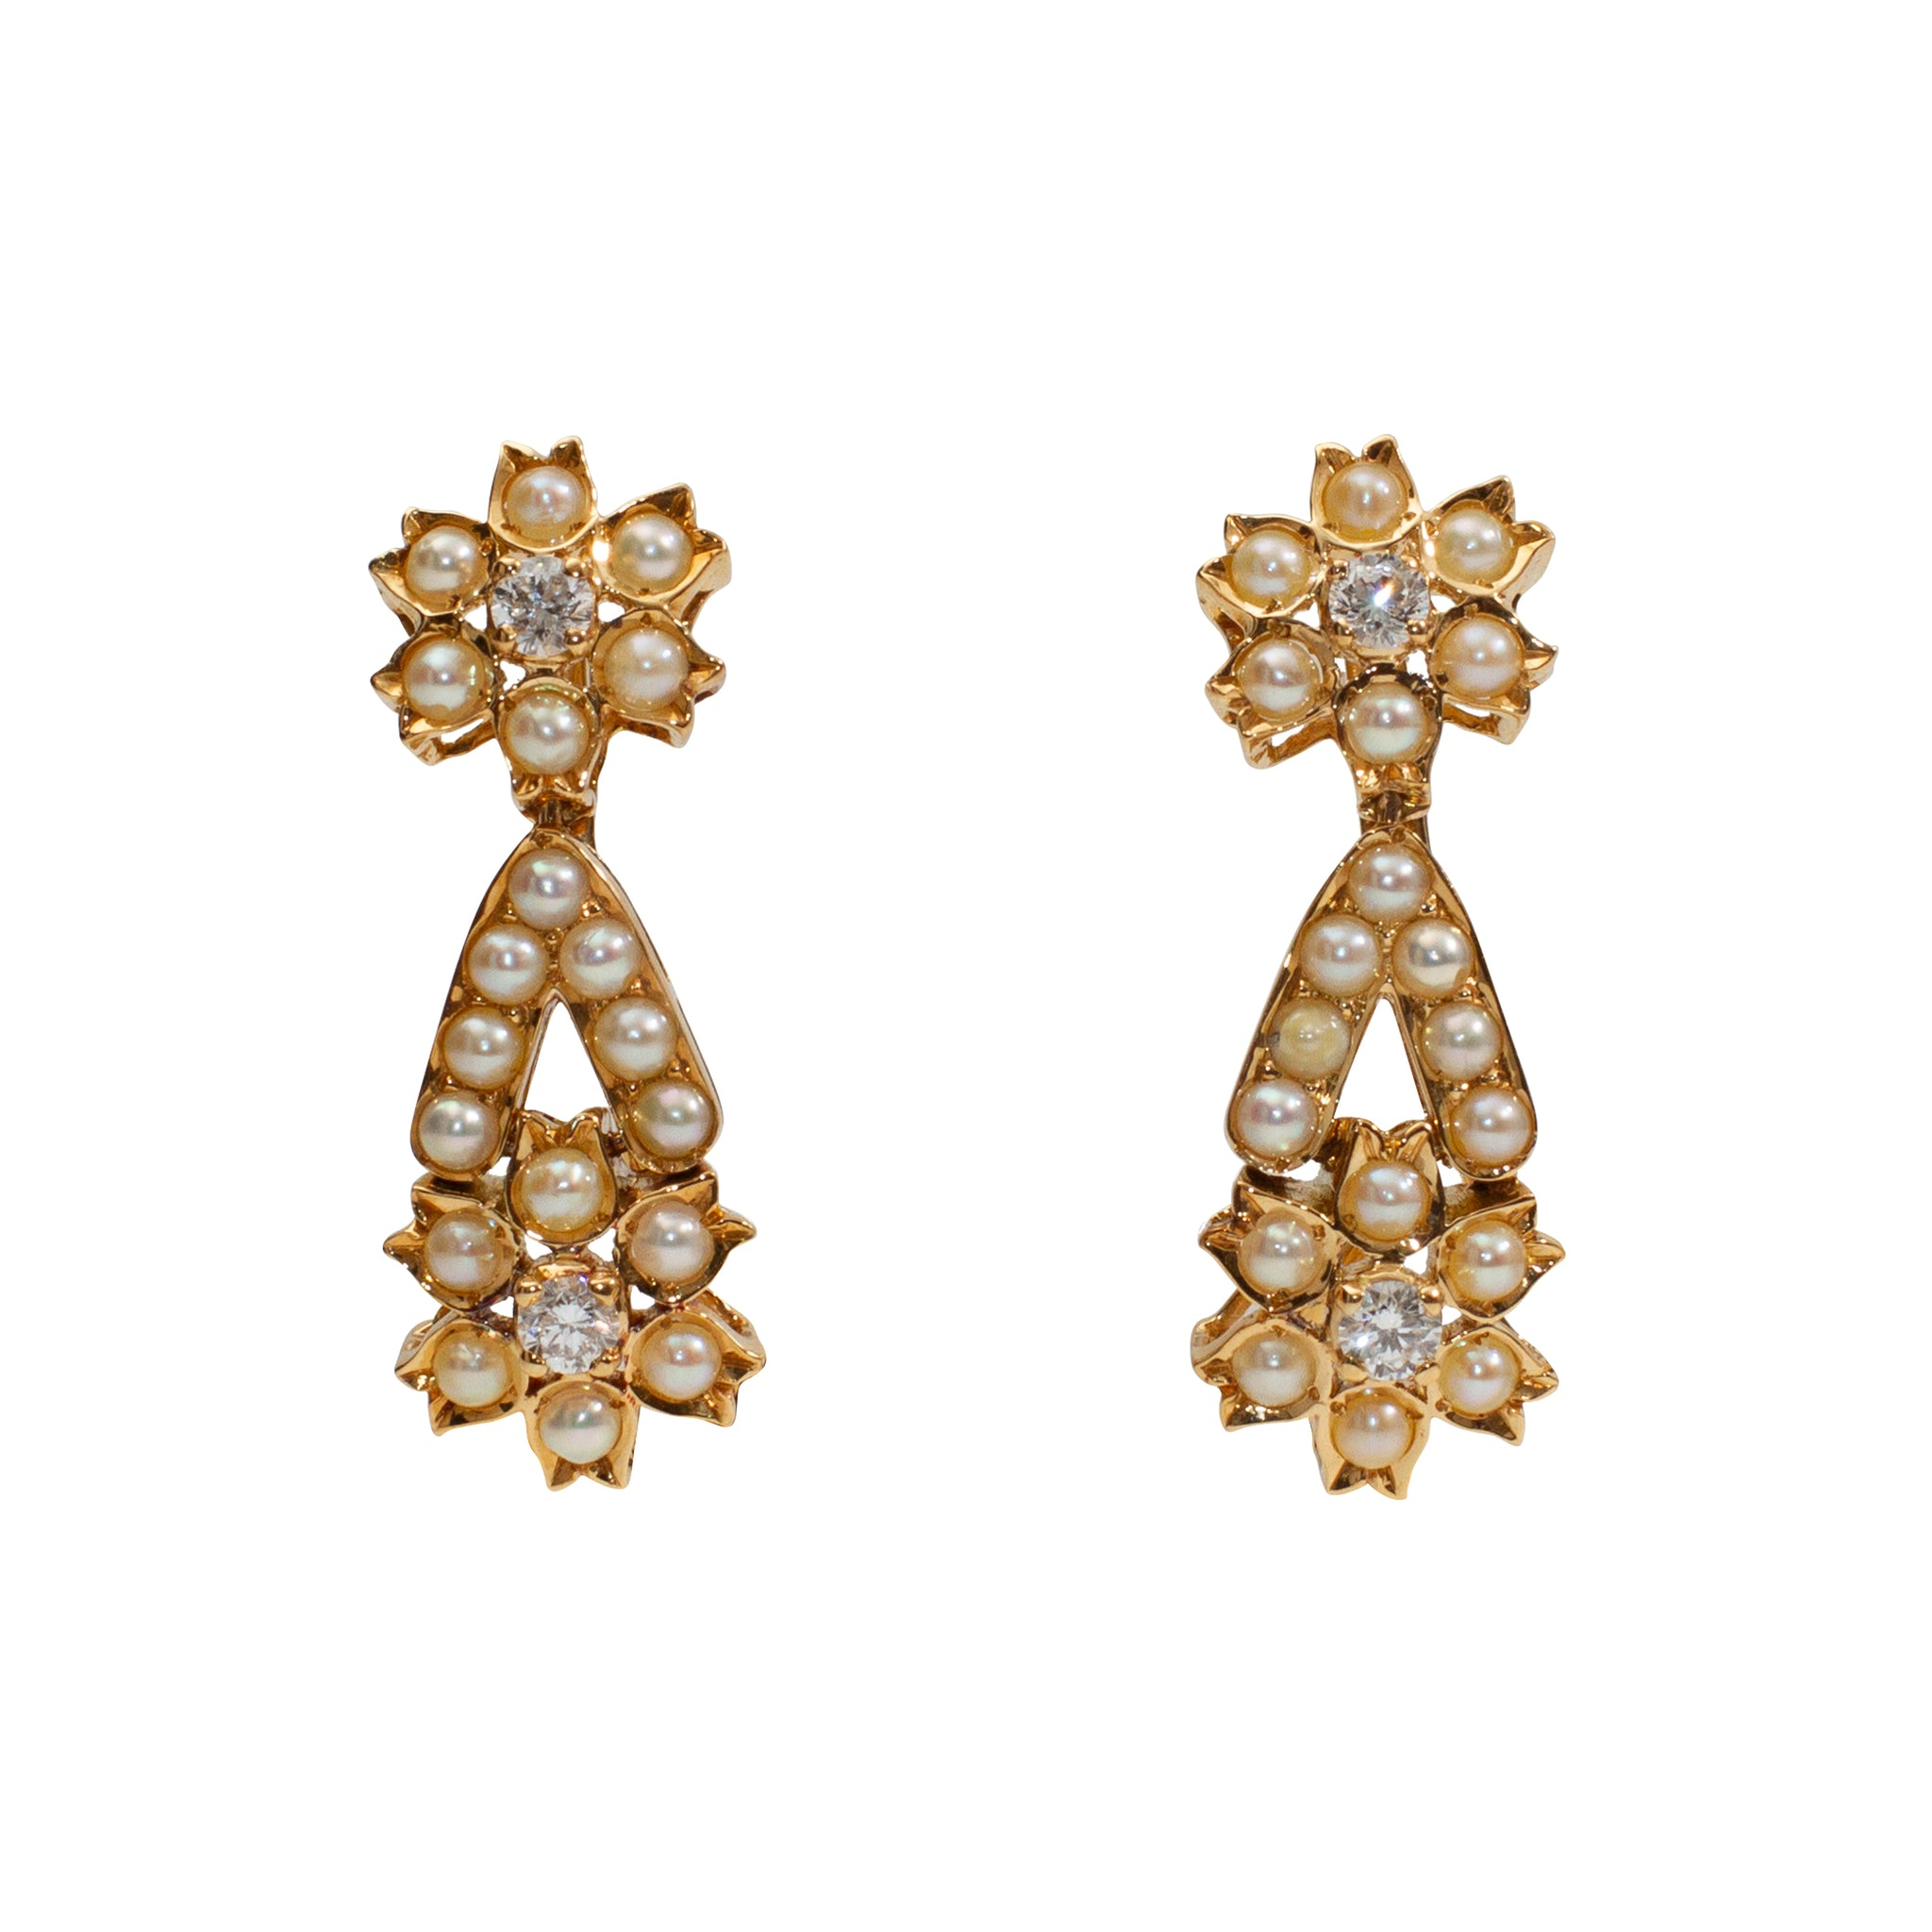 Basra Pearl Earings in 18K Gold